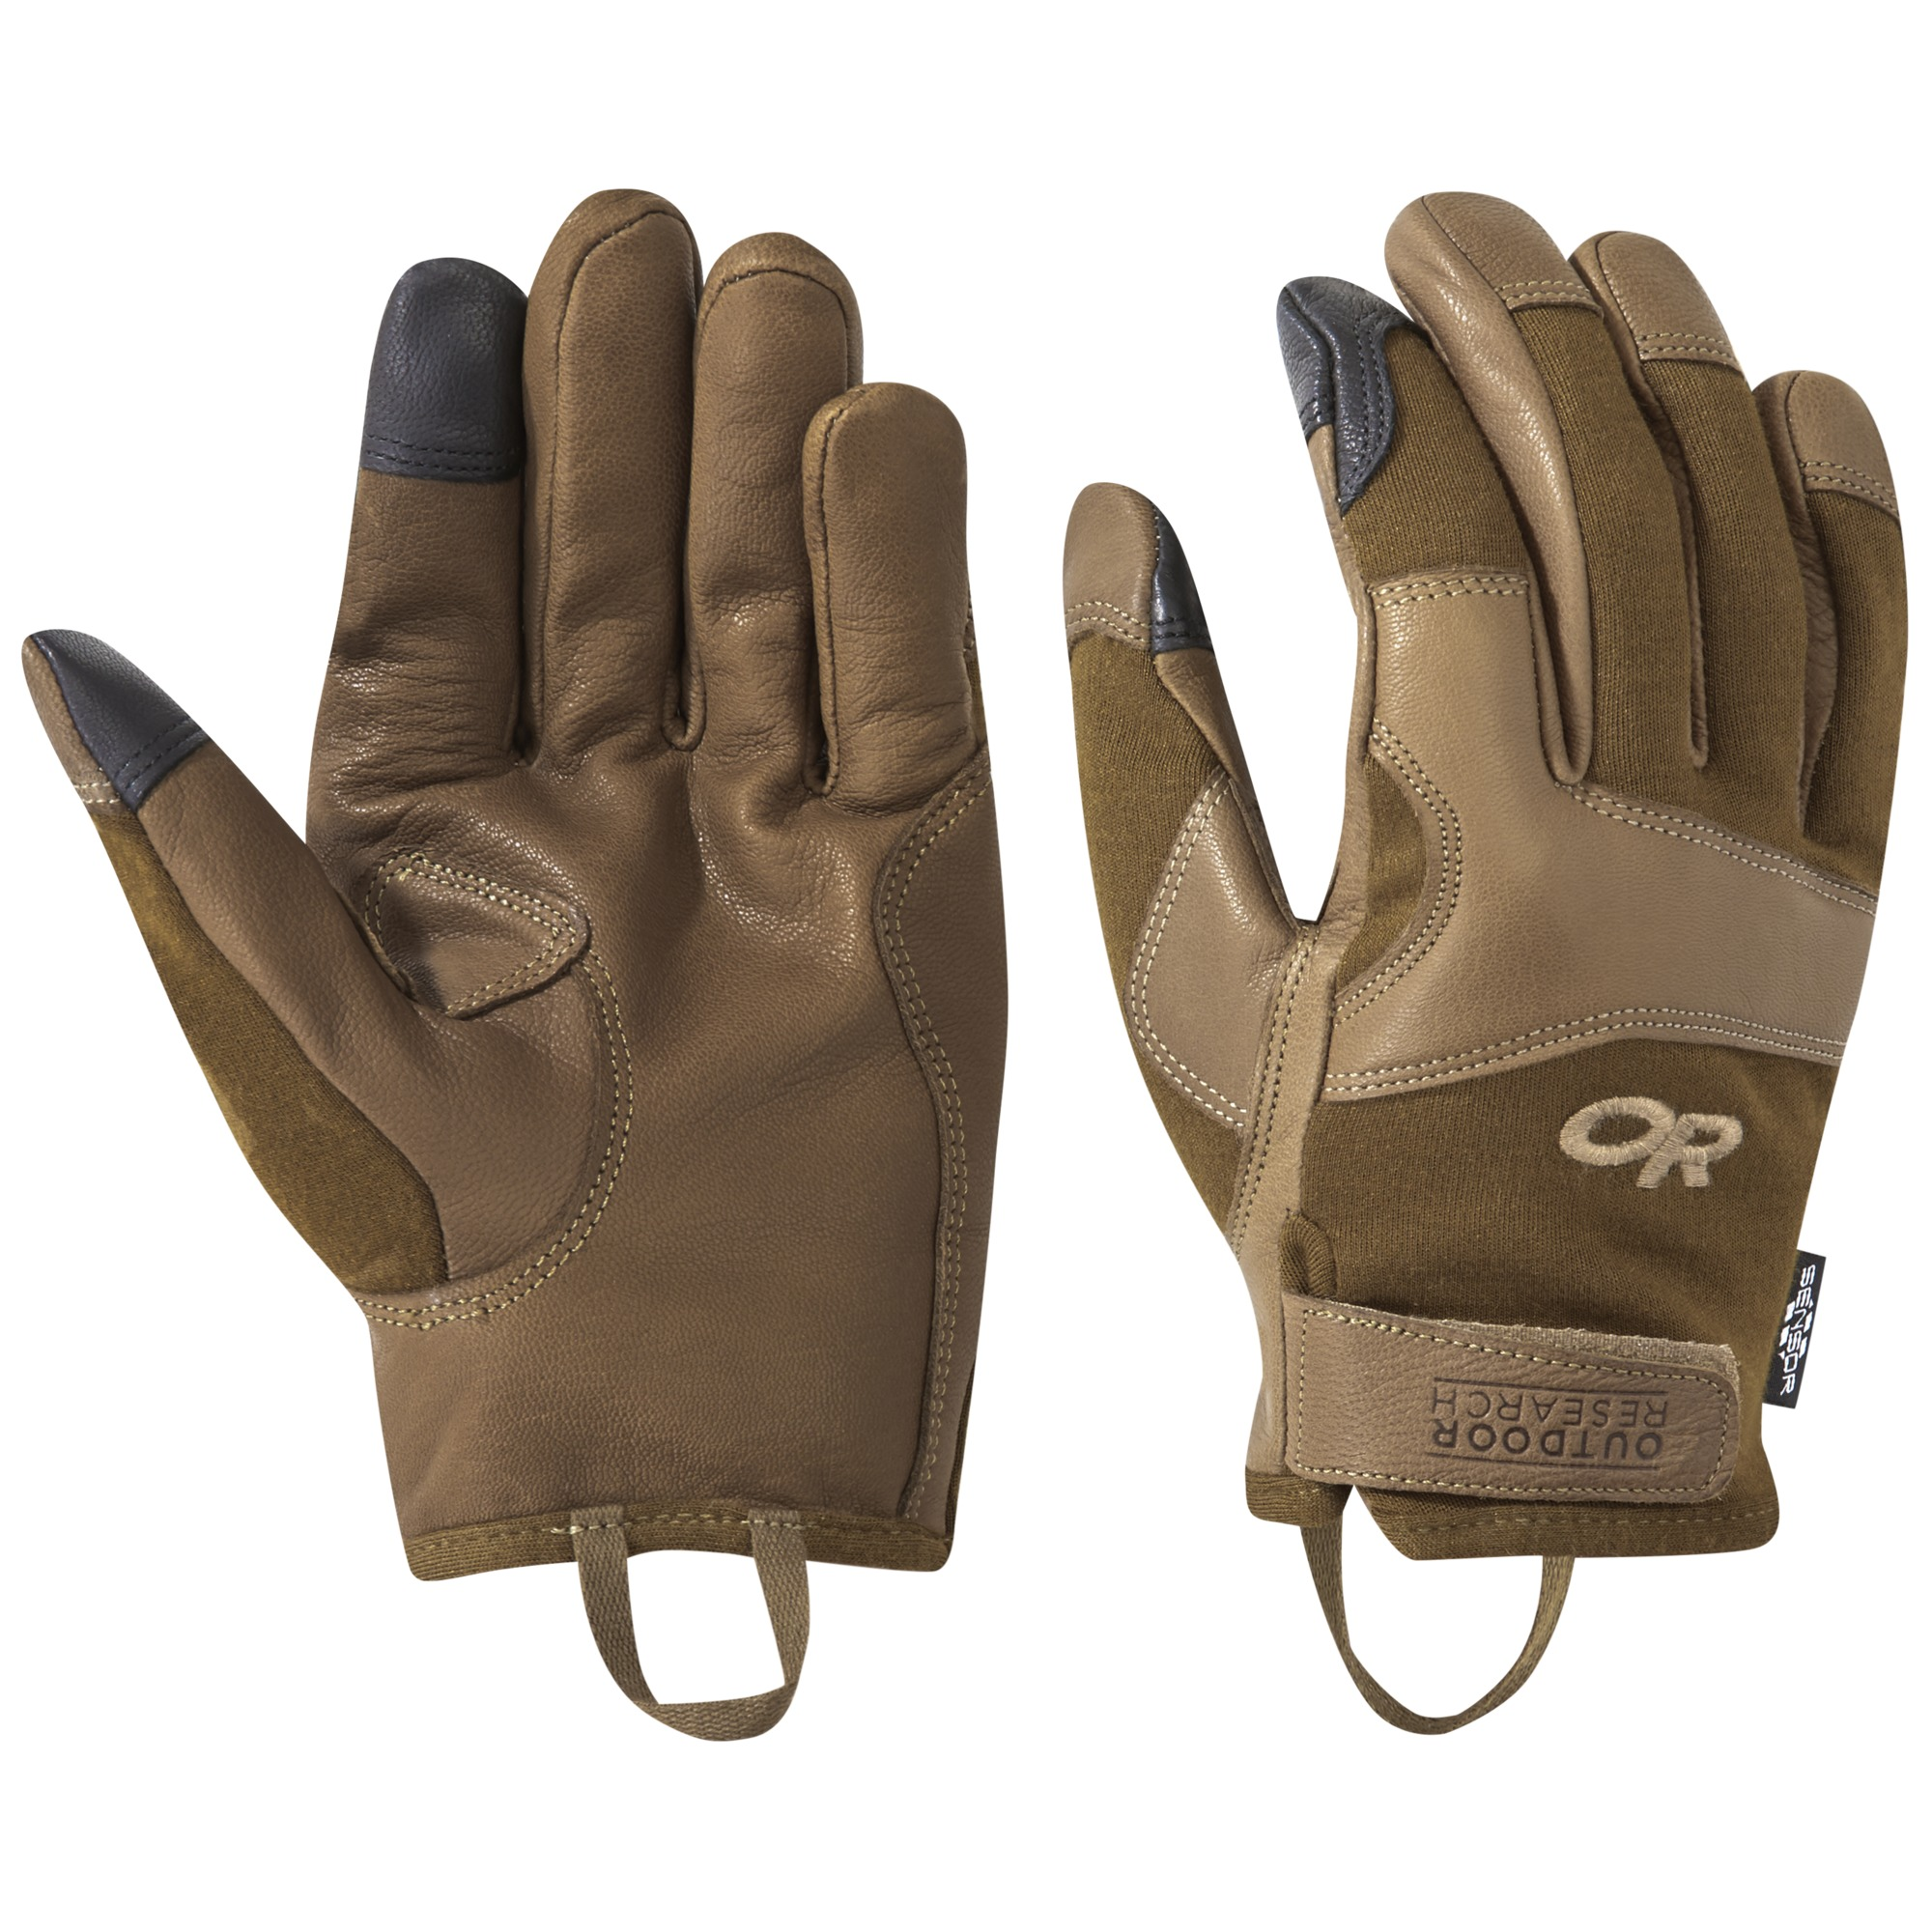 Suppressor Sensor Gloves - coyote | Outdoor Research